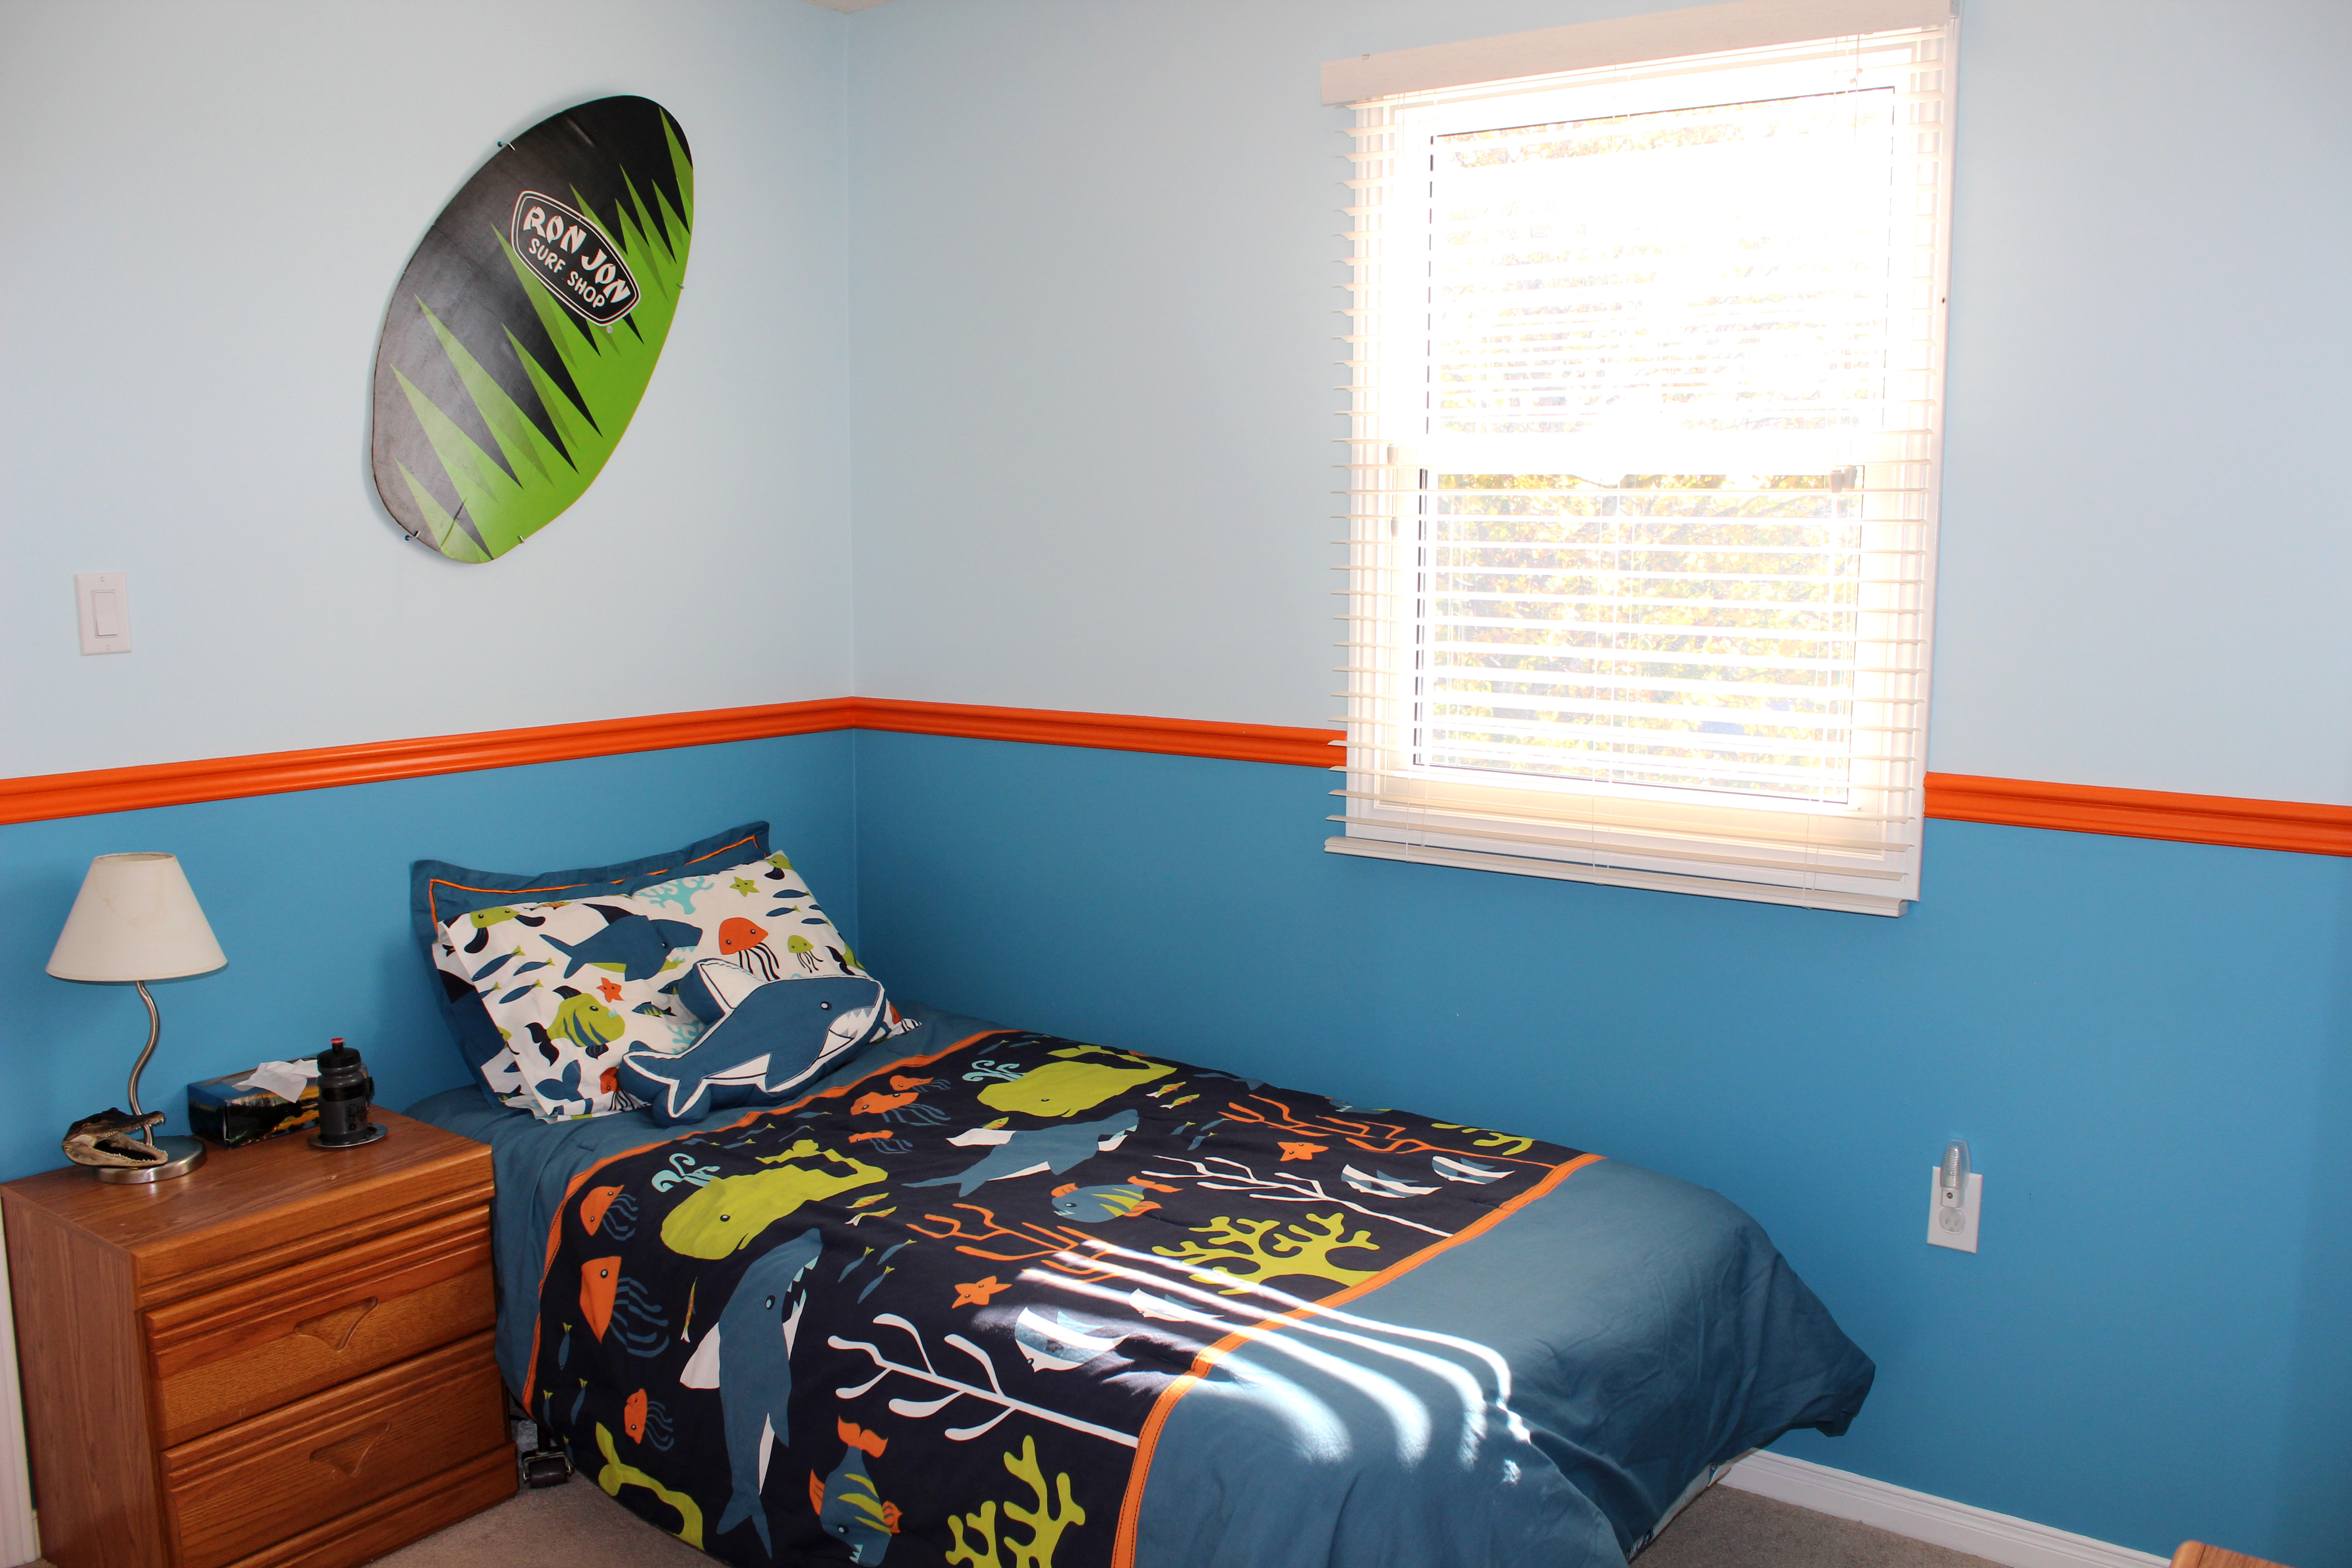 think our lil surfer dude gives his surf bedroom two thumbs up